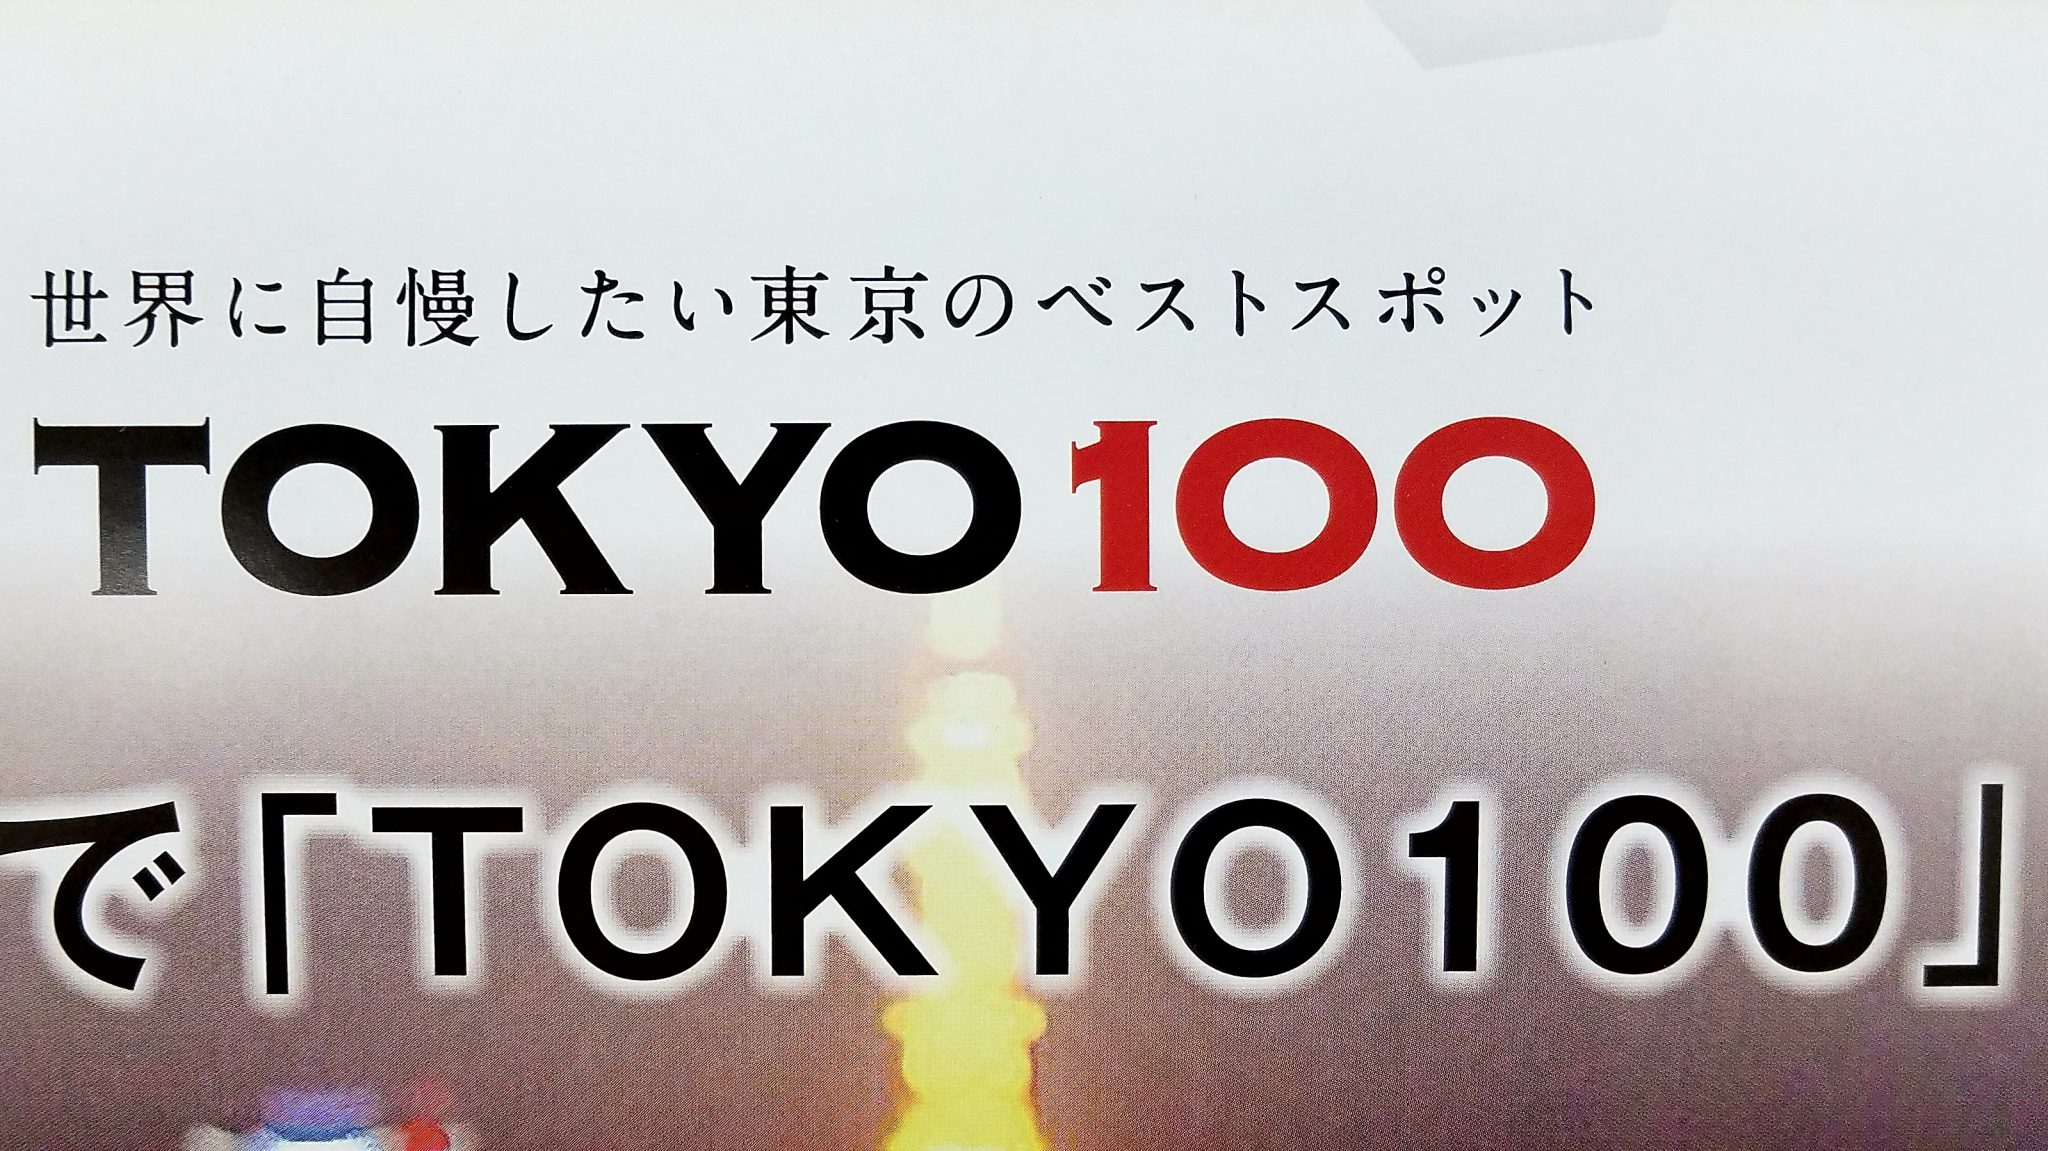 Tokyo 100 - Maction Planet celebrates 100 100% 5-star TripAdvisor reviews for their Tokyo Private Tours!